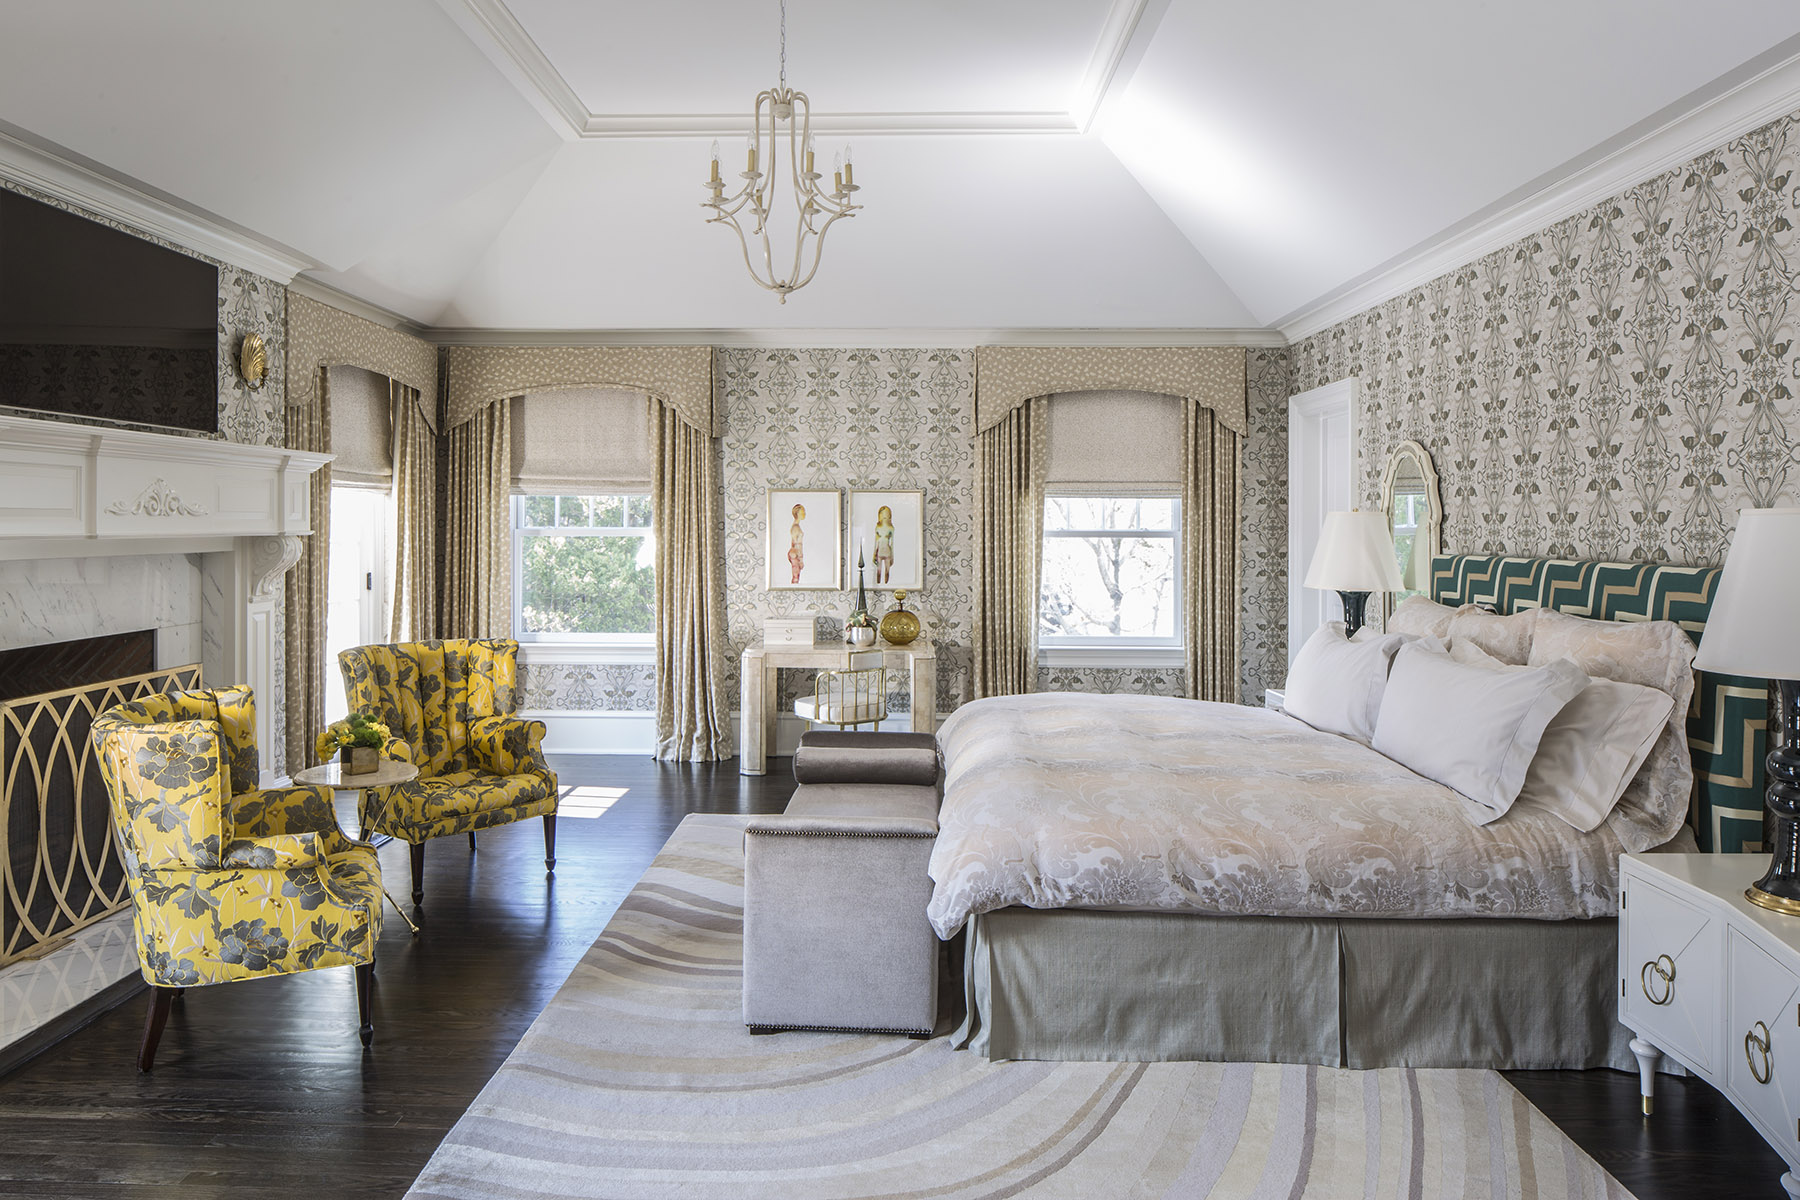 Master bedroom by Marks & Frantz. Employing color and pattern is a hallmark of this design duo, who also design sets for major motion pictures. by Marks & Frantz